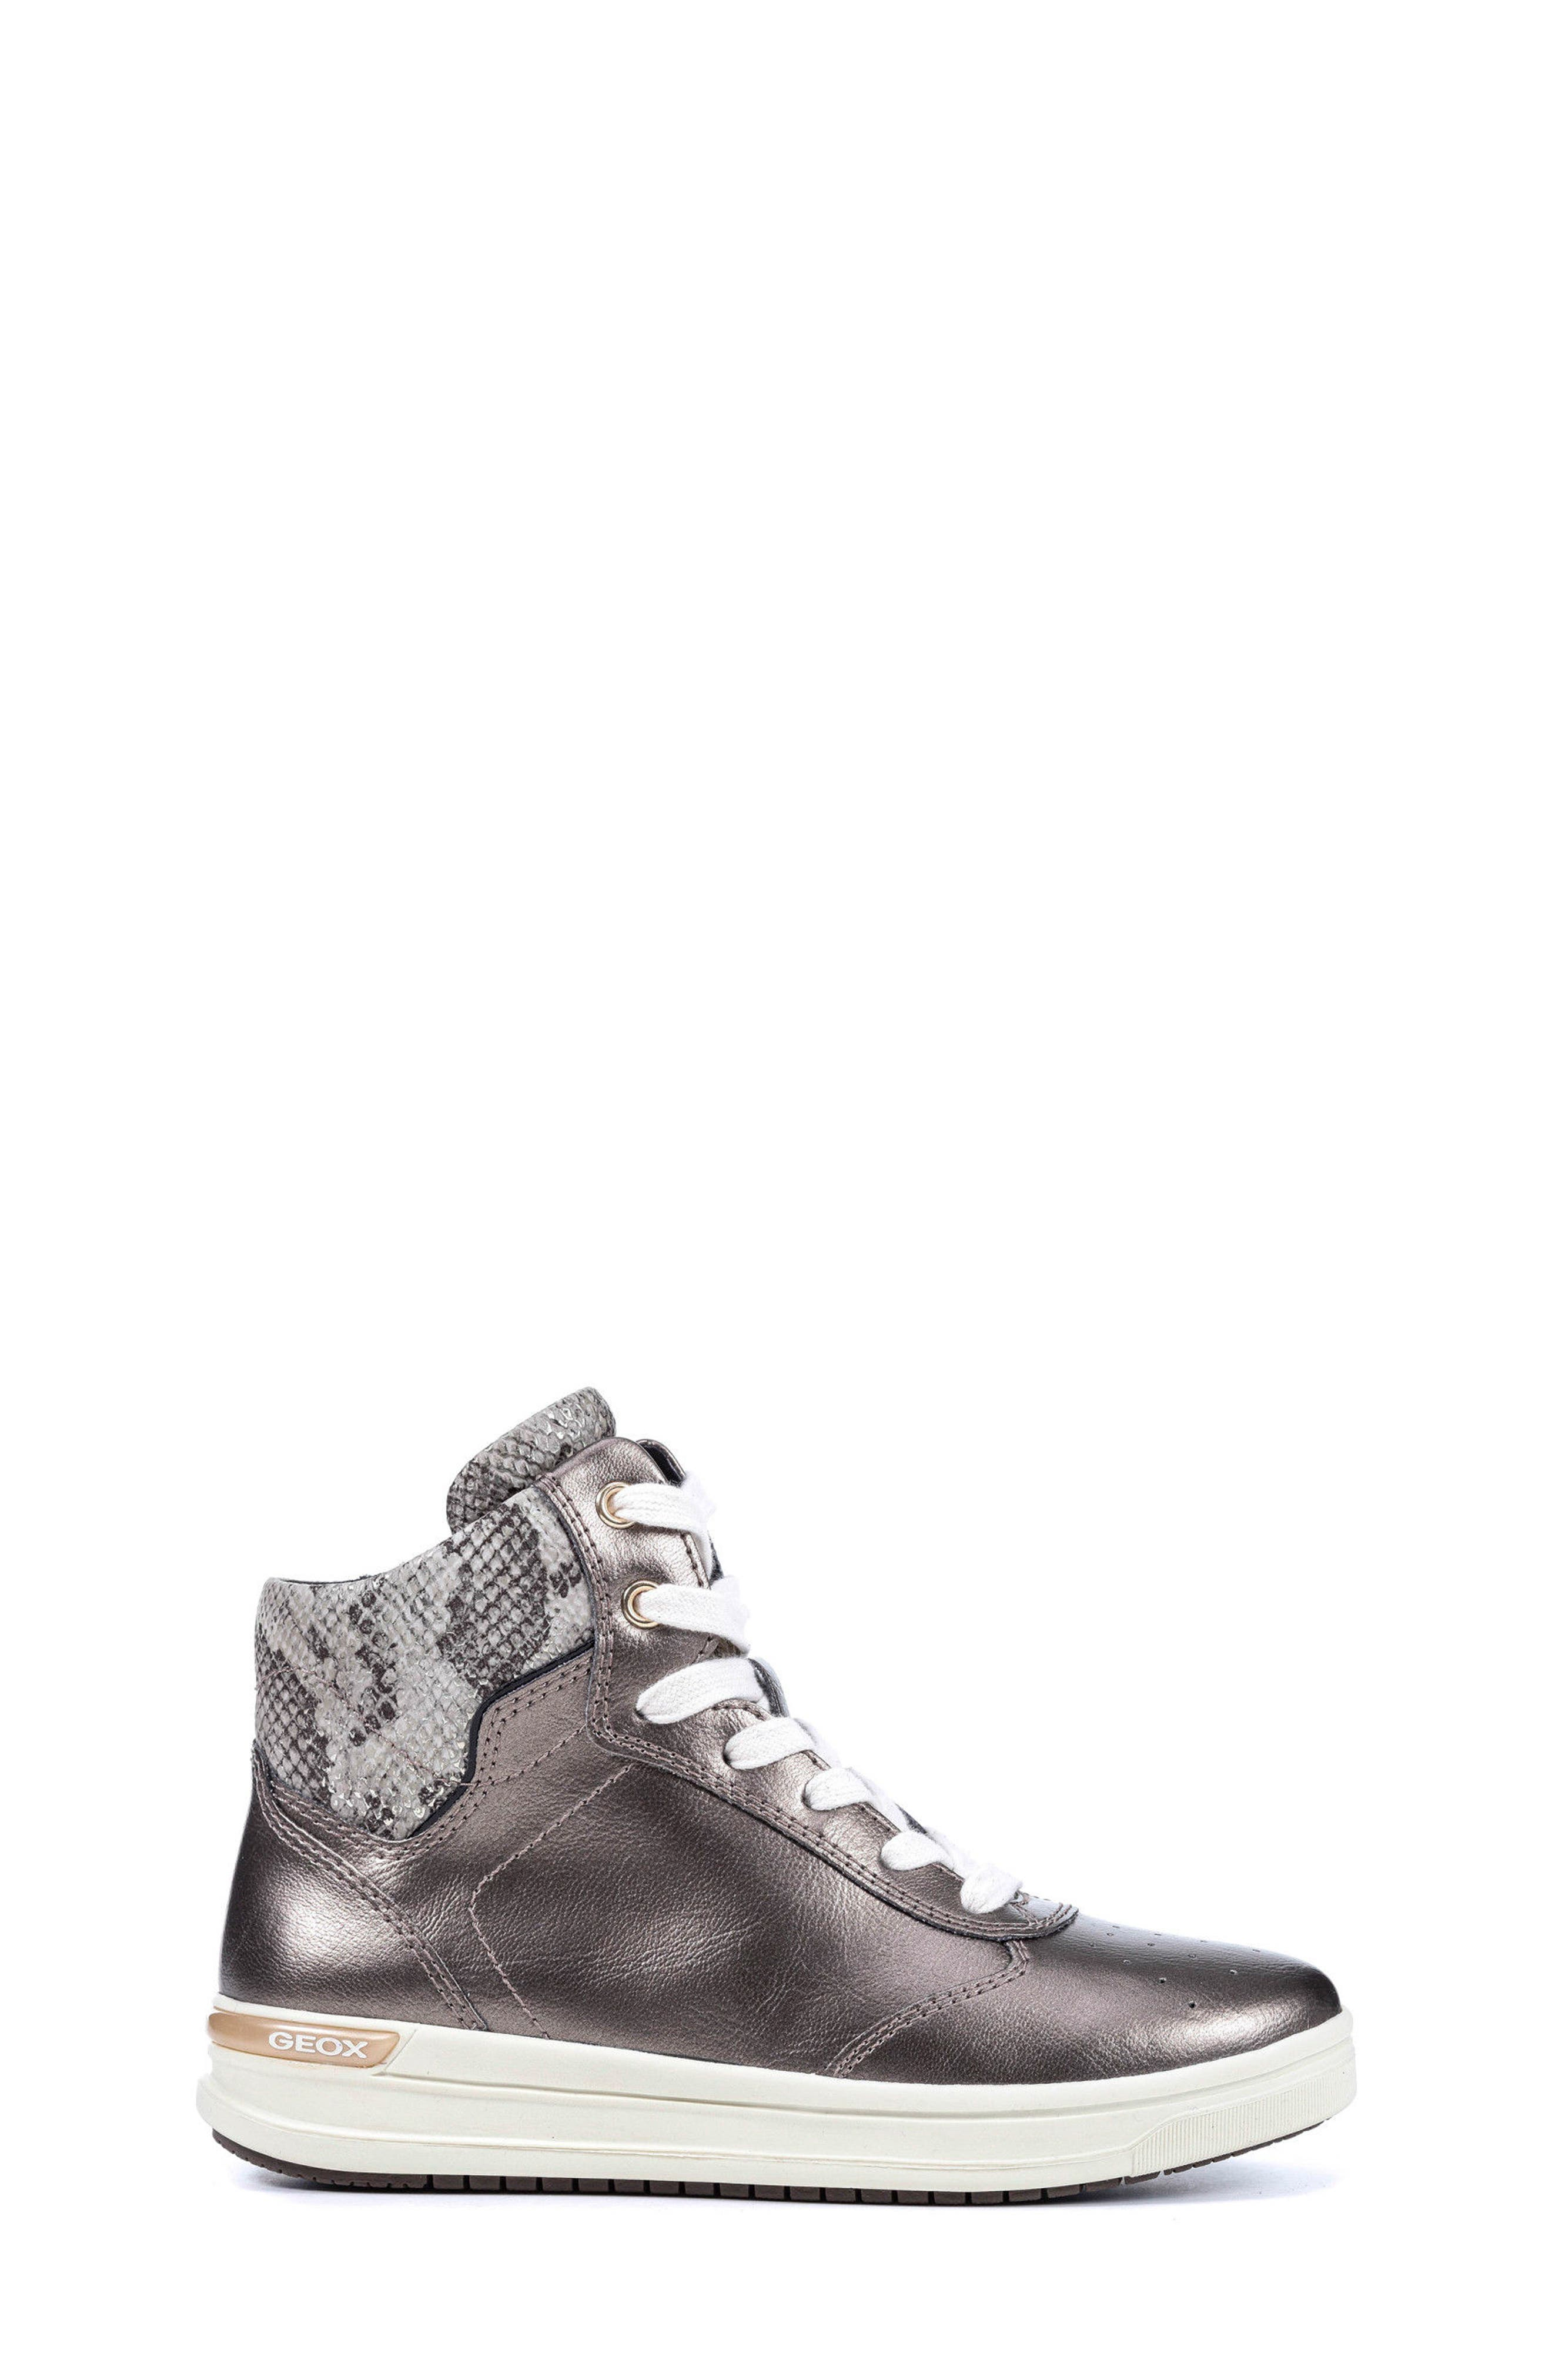 Cave Up Girl High Top Sneaker,                             Alternate thumbnail 6, color,